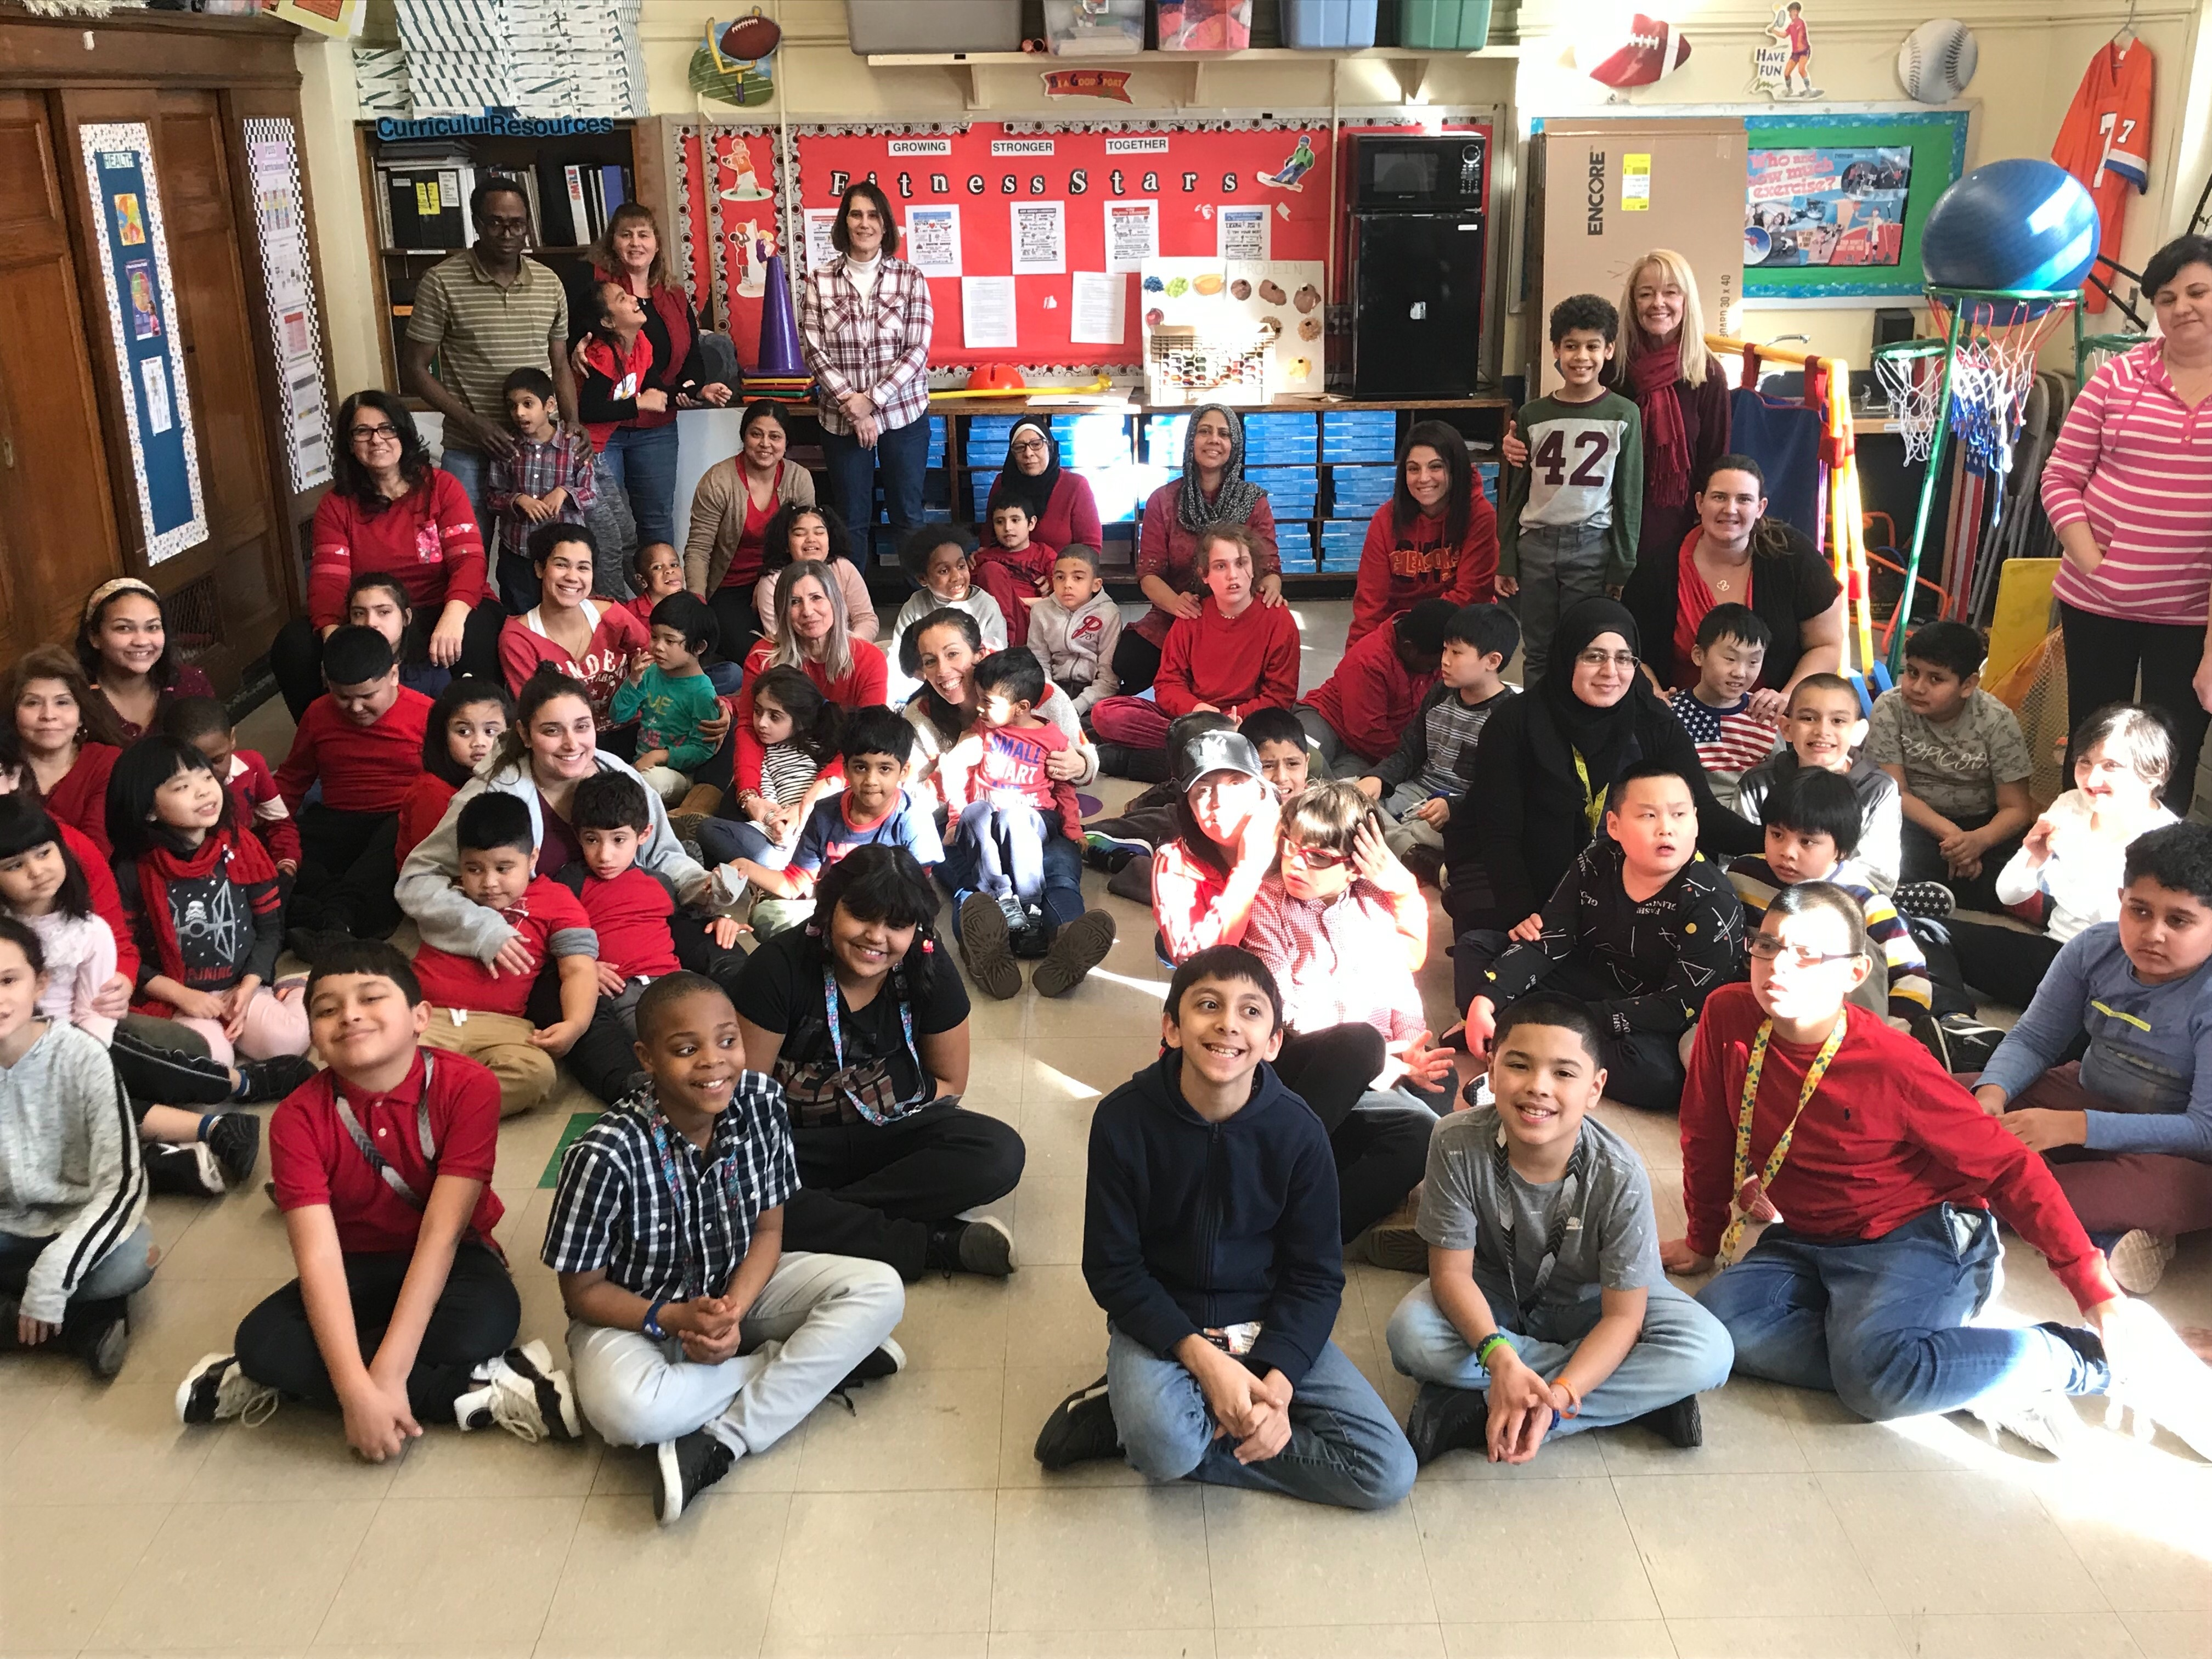 students and teacher group picture wearing red